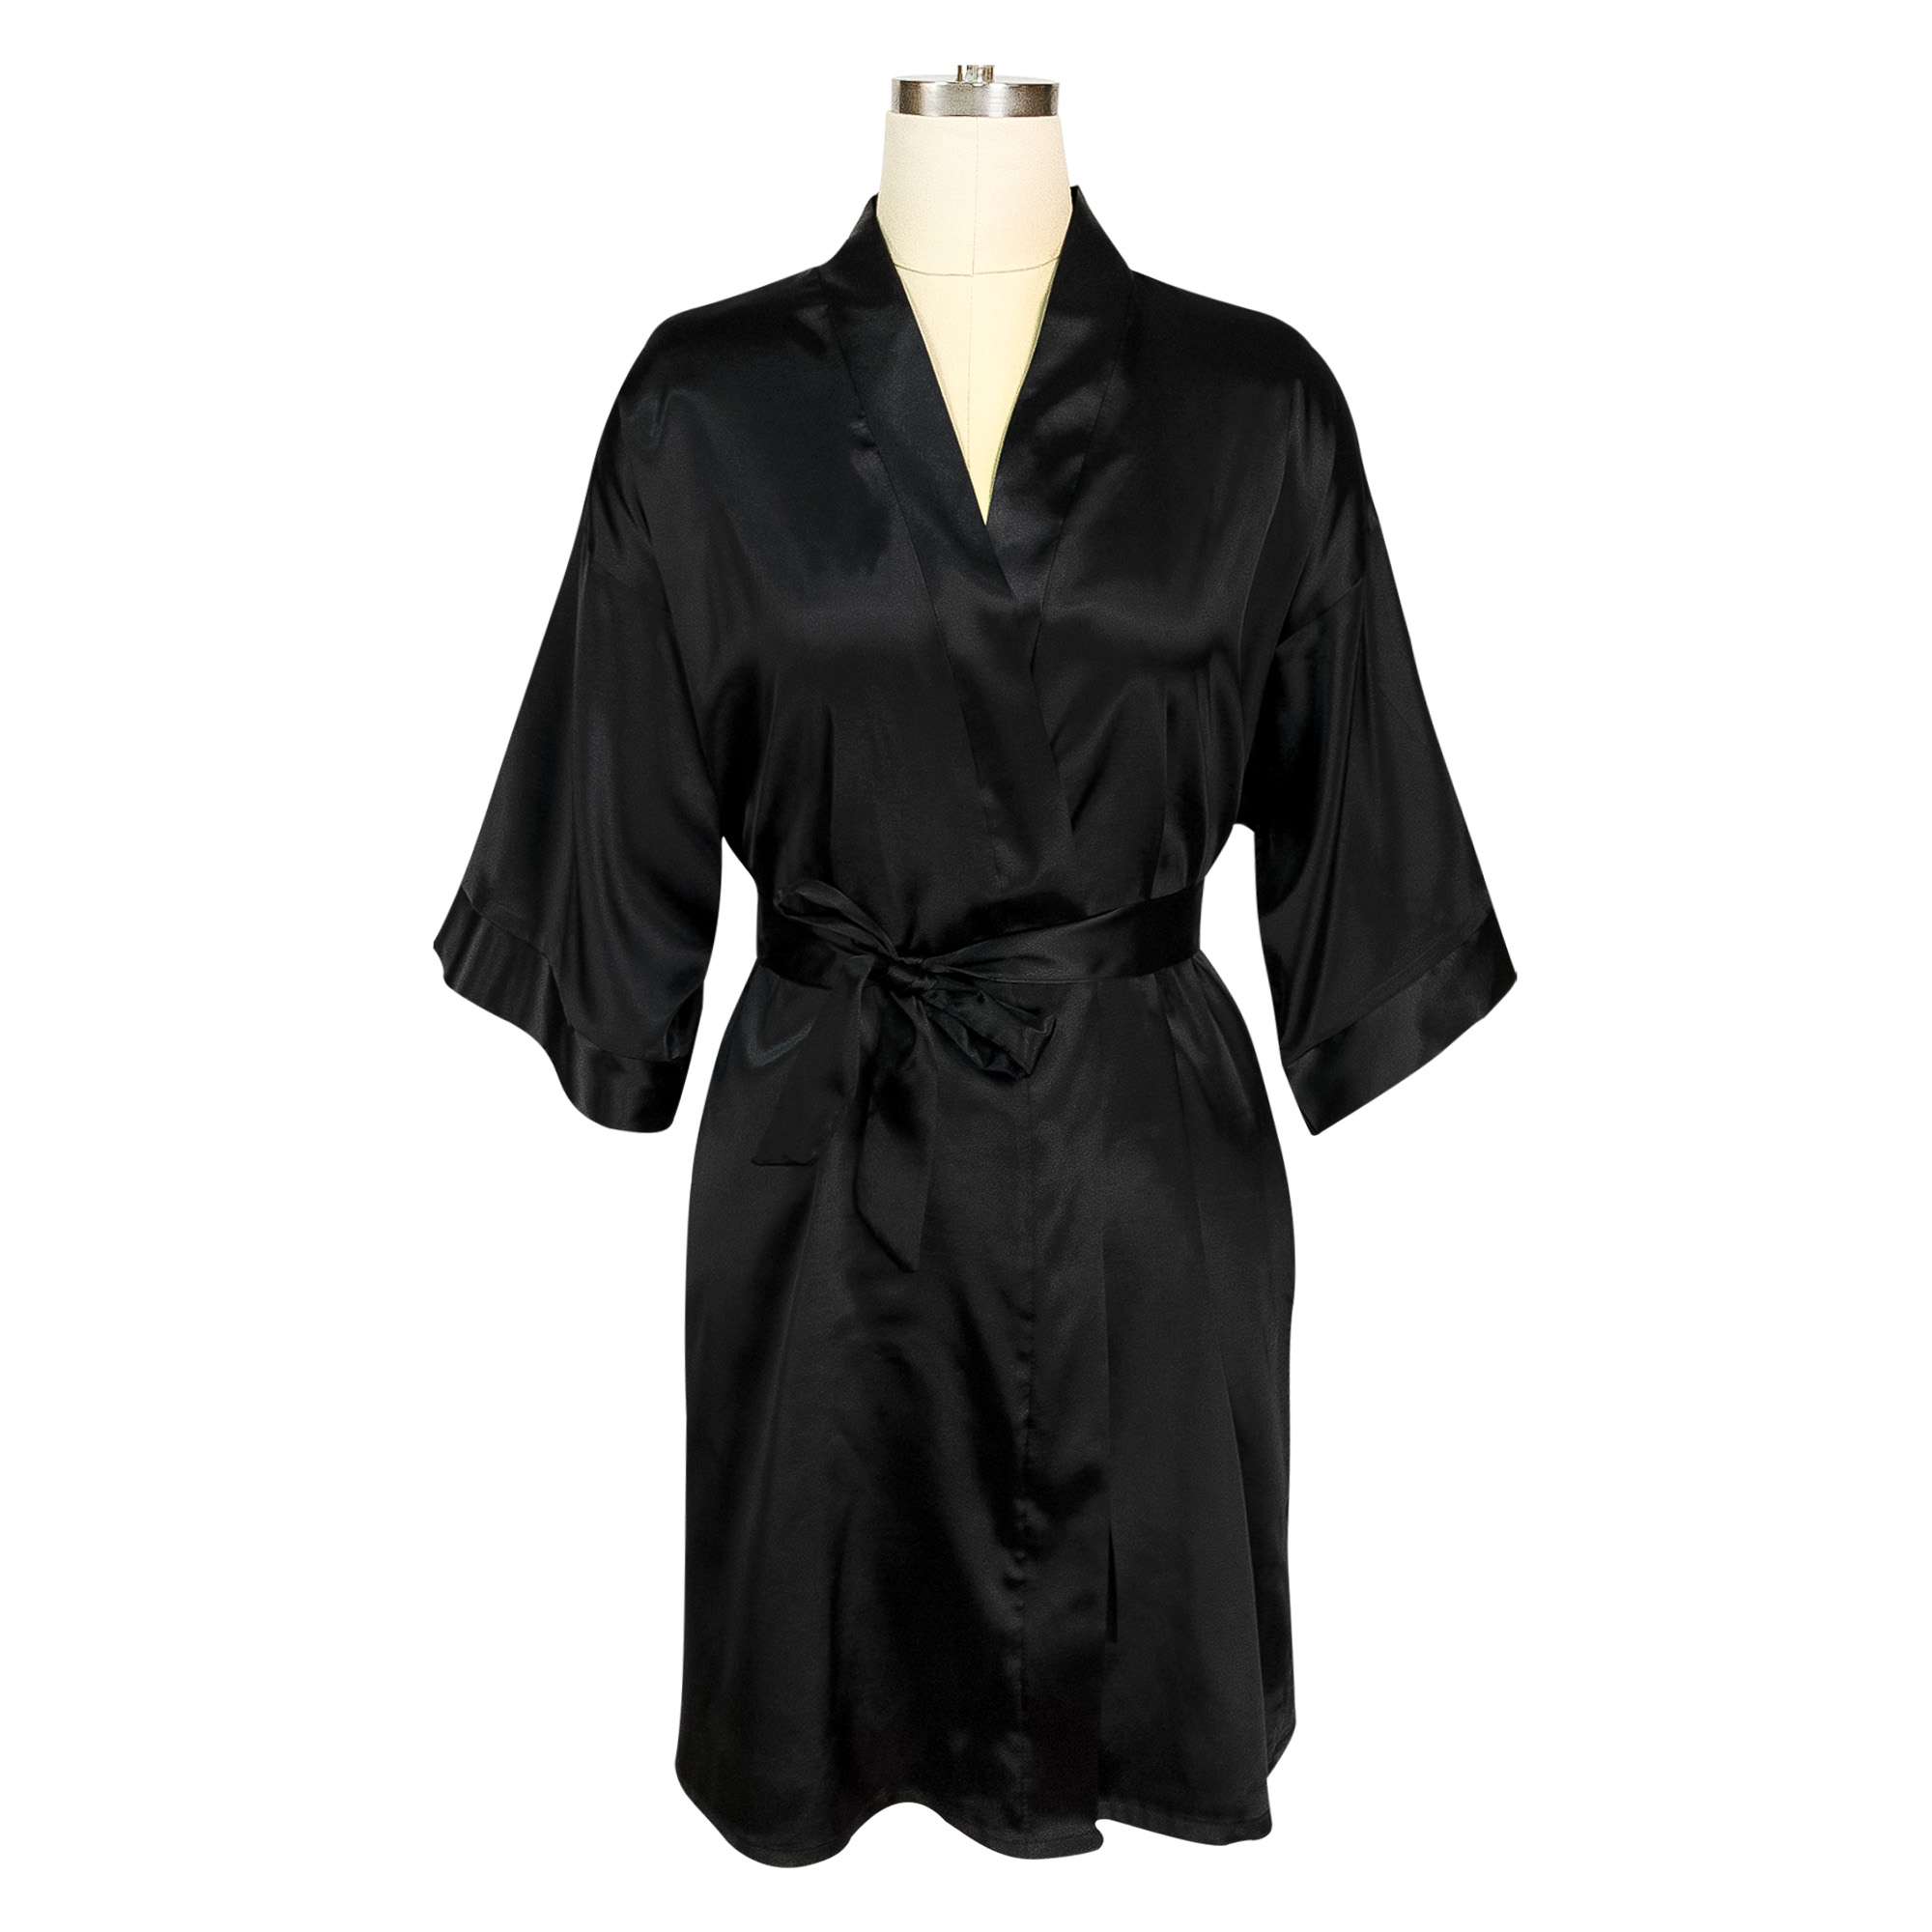 Wedding Party Blank Robes Bride Bridesmaid Pure Color Bath Robe Short Night Gown For Girls